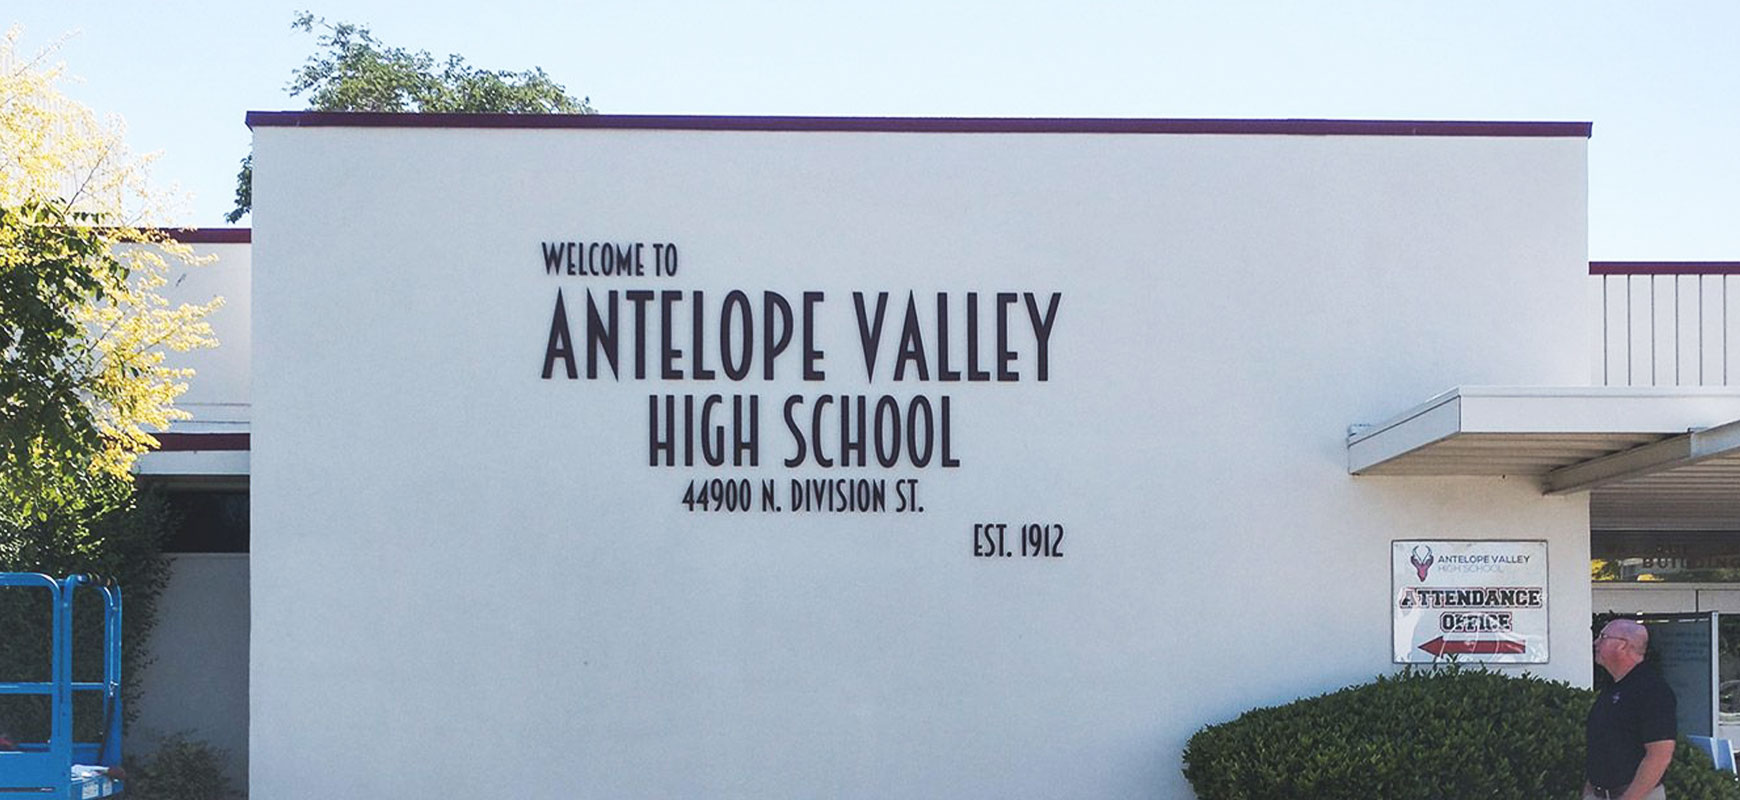 Antelope Valley High School exterior sign with black 3d letters made of brushed aluminum